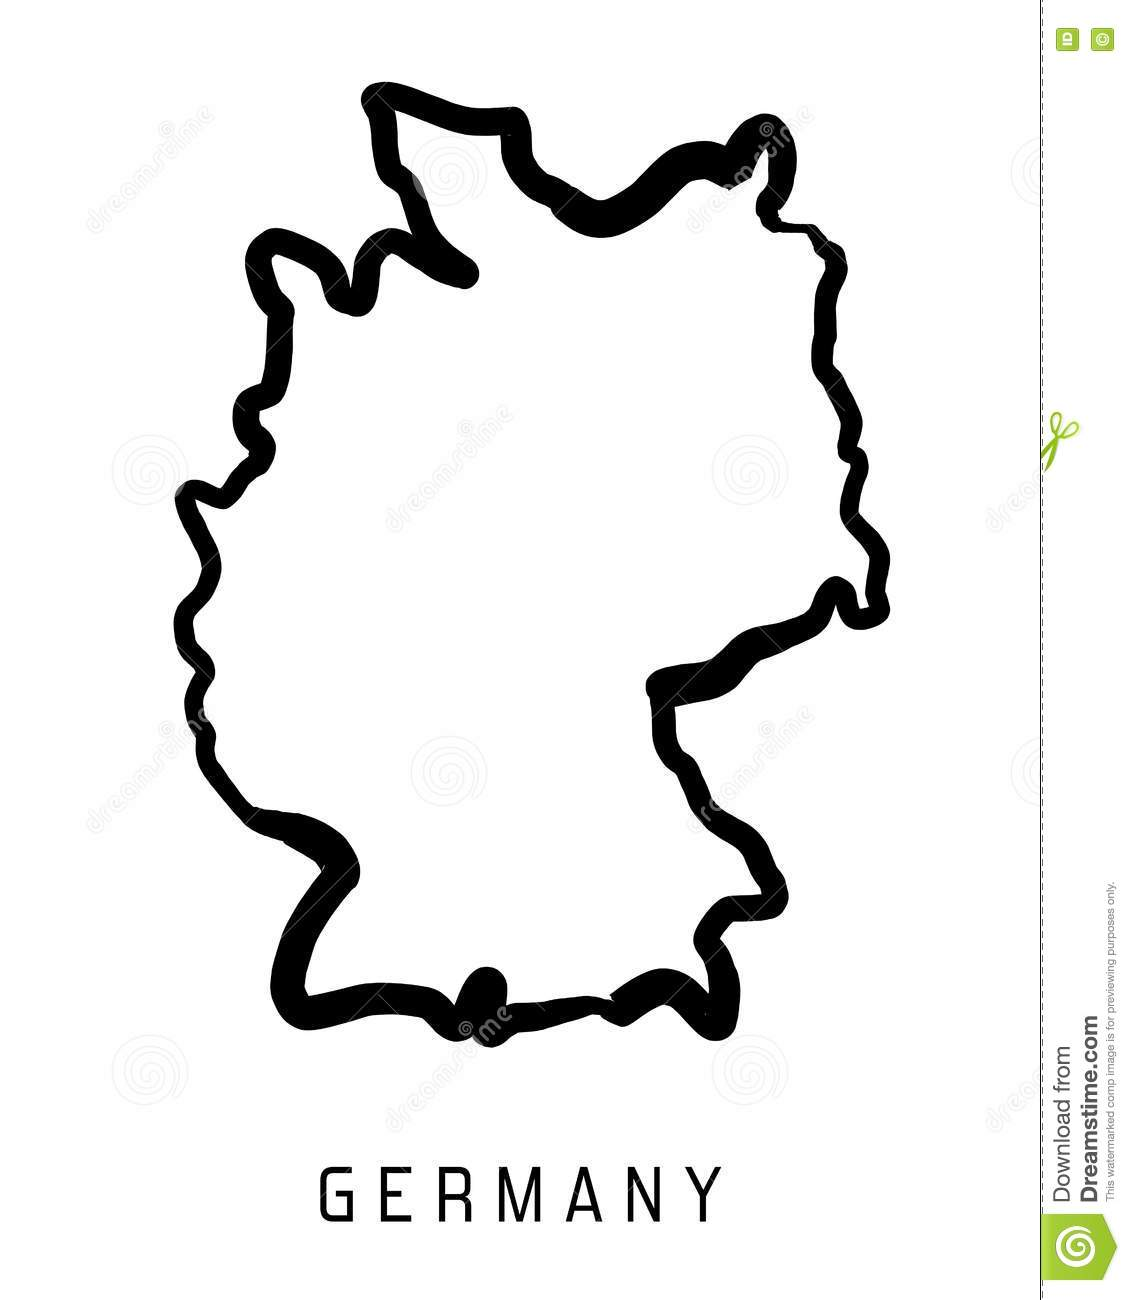 Germany Outline Map Stock Vector Illustration Of Symbolic